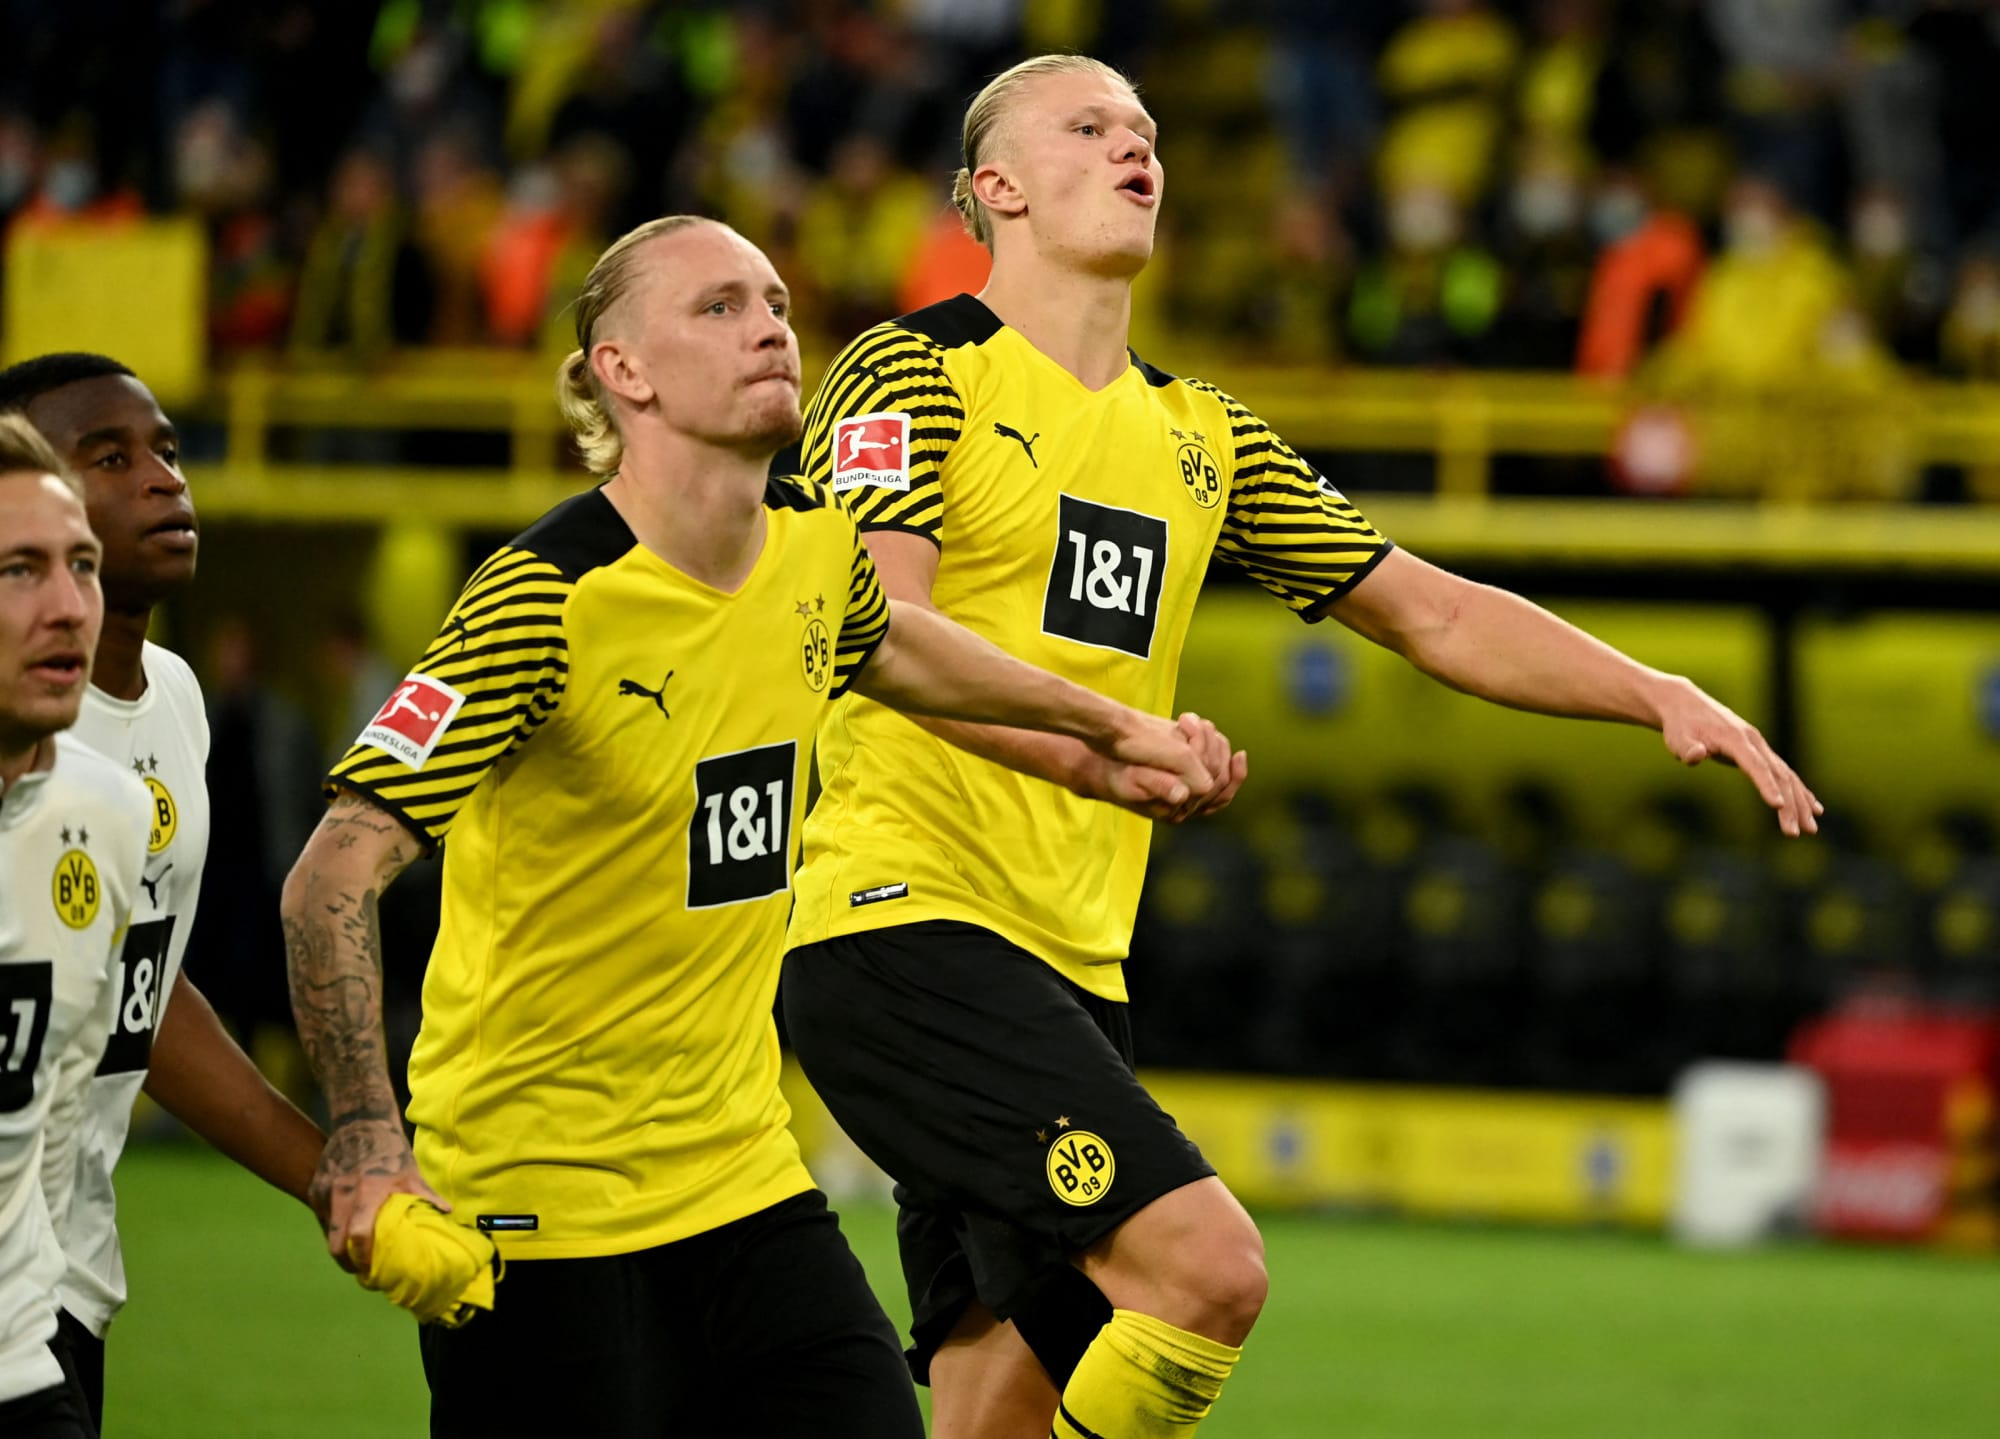 Manchester City ahead in the race to sign Borussia Dortmund goal-machine